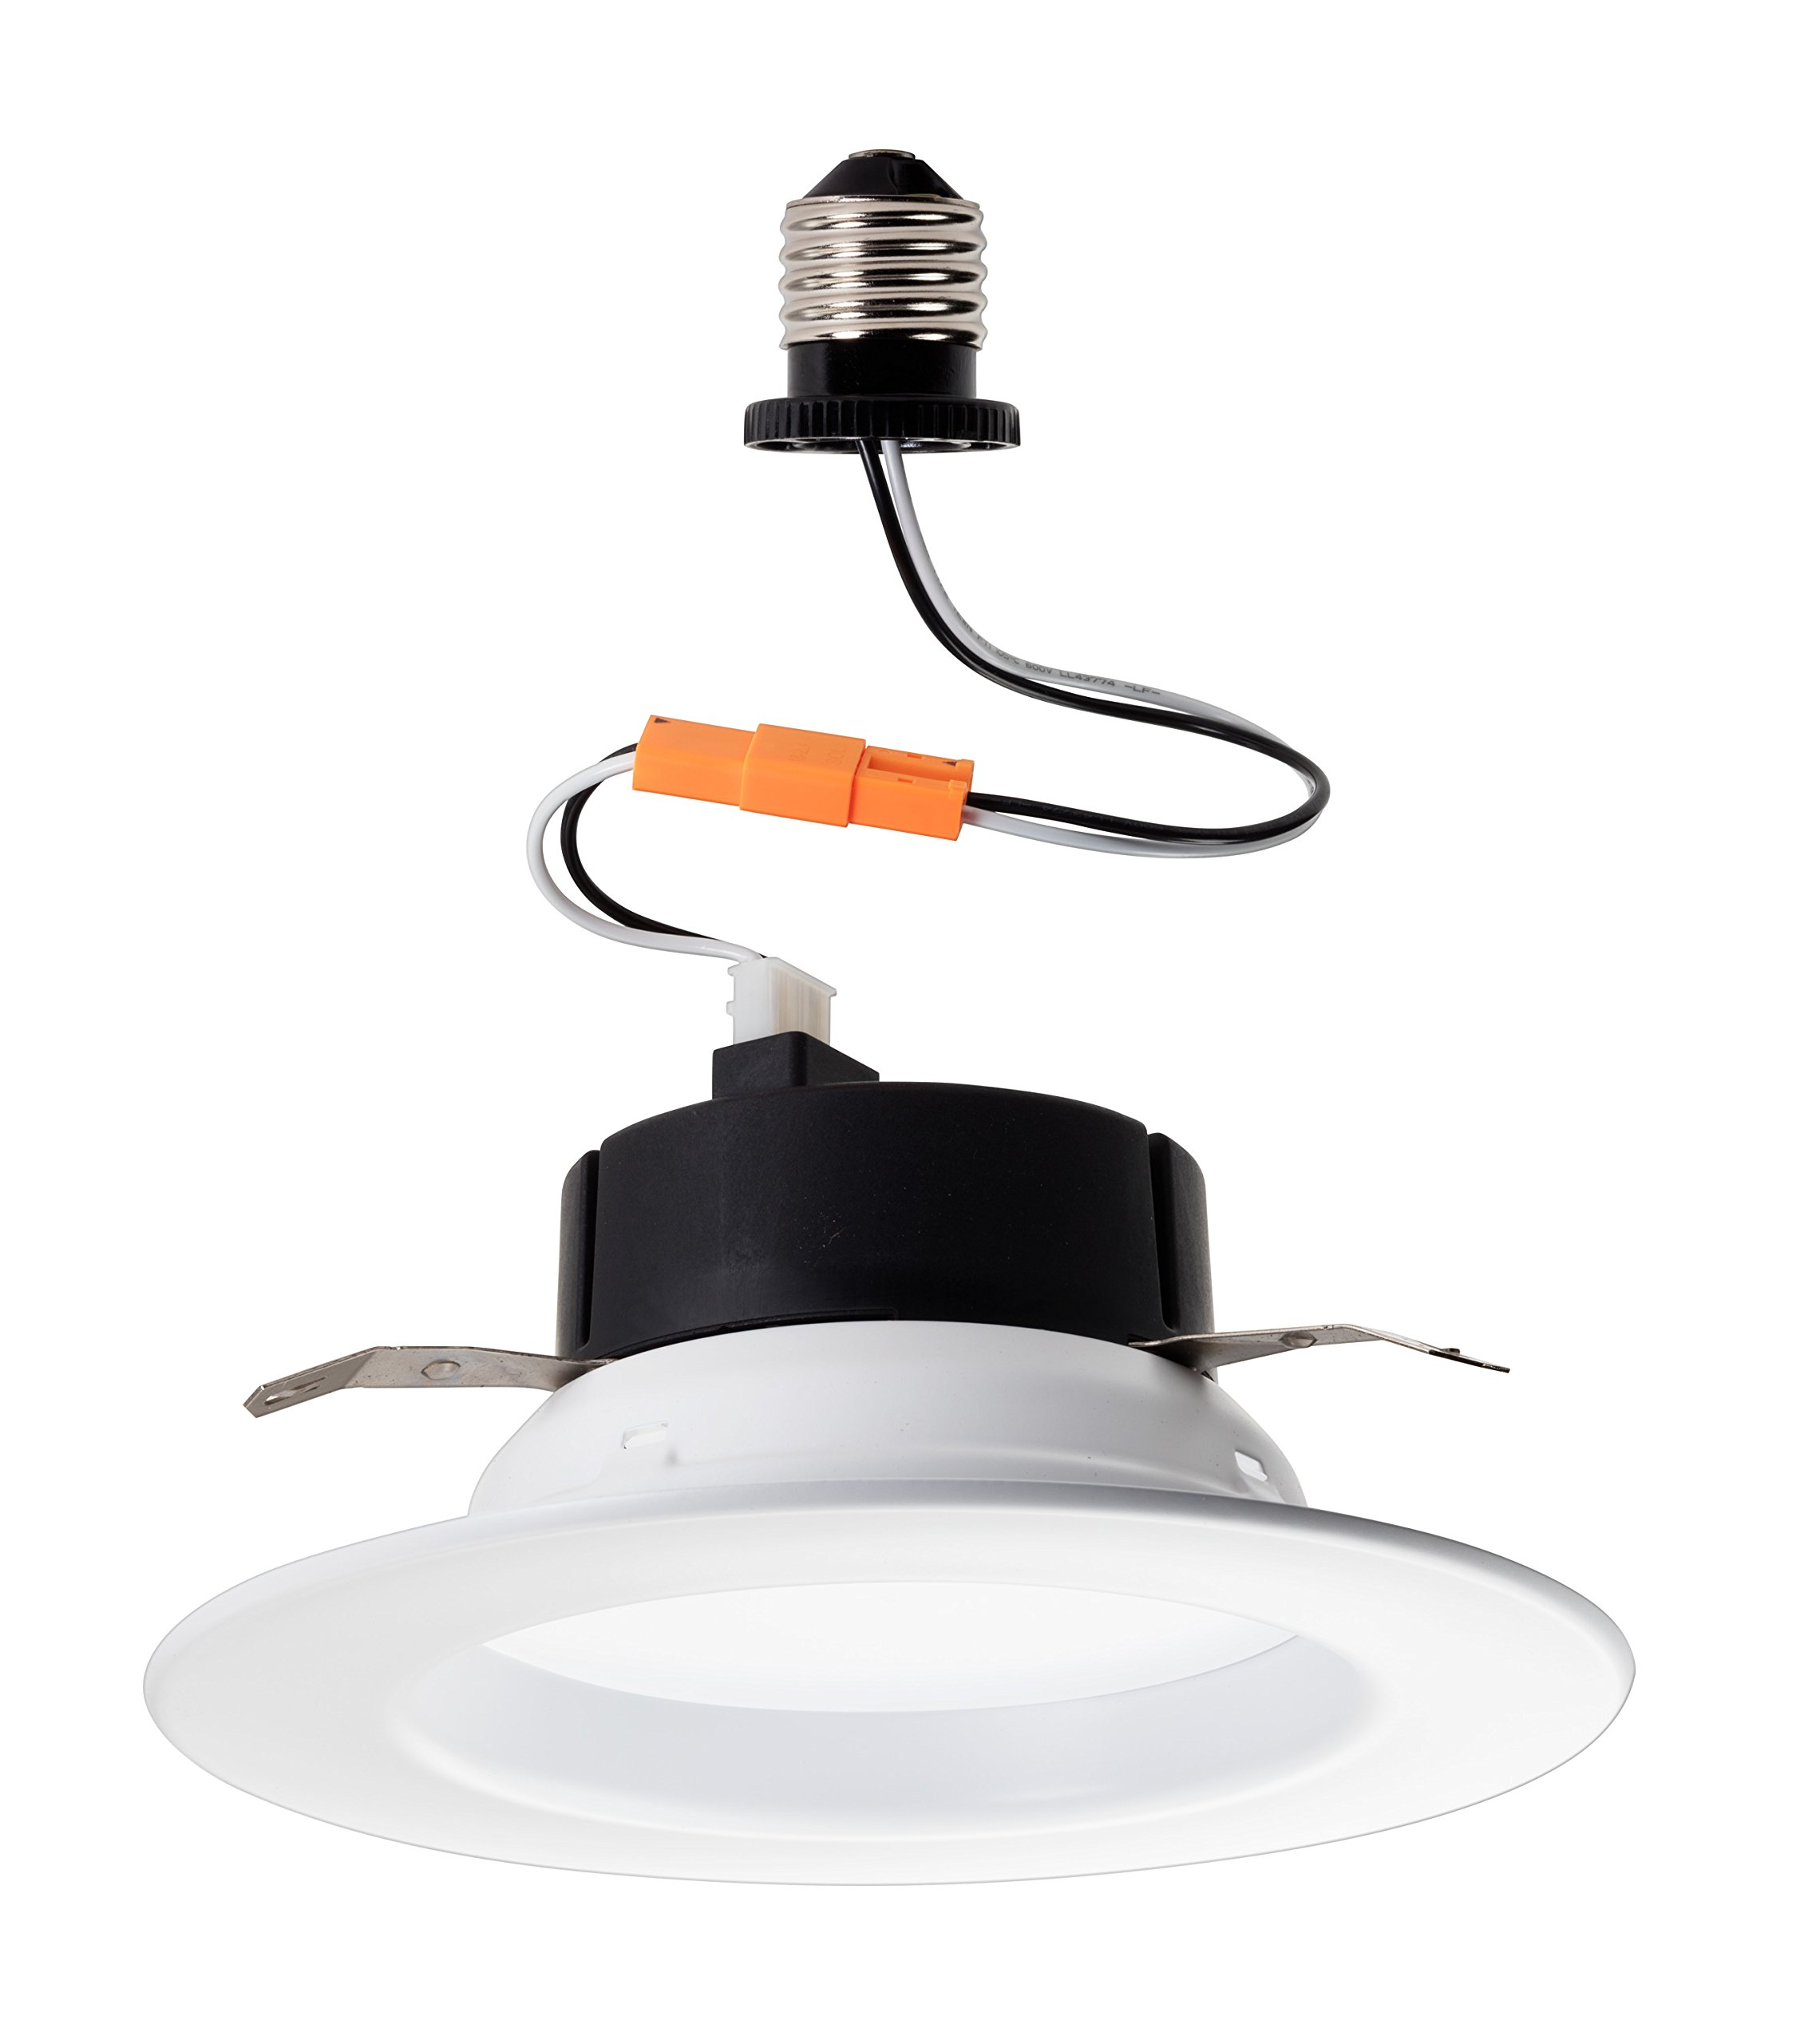 Philips 801274 65W Equivalent Dimmable Daylight LED Downlight, 5-6'' by Philips (Image #4)